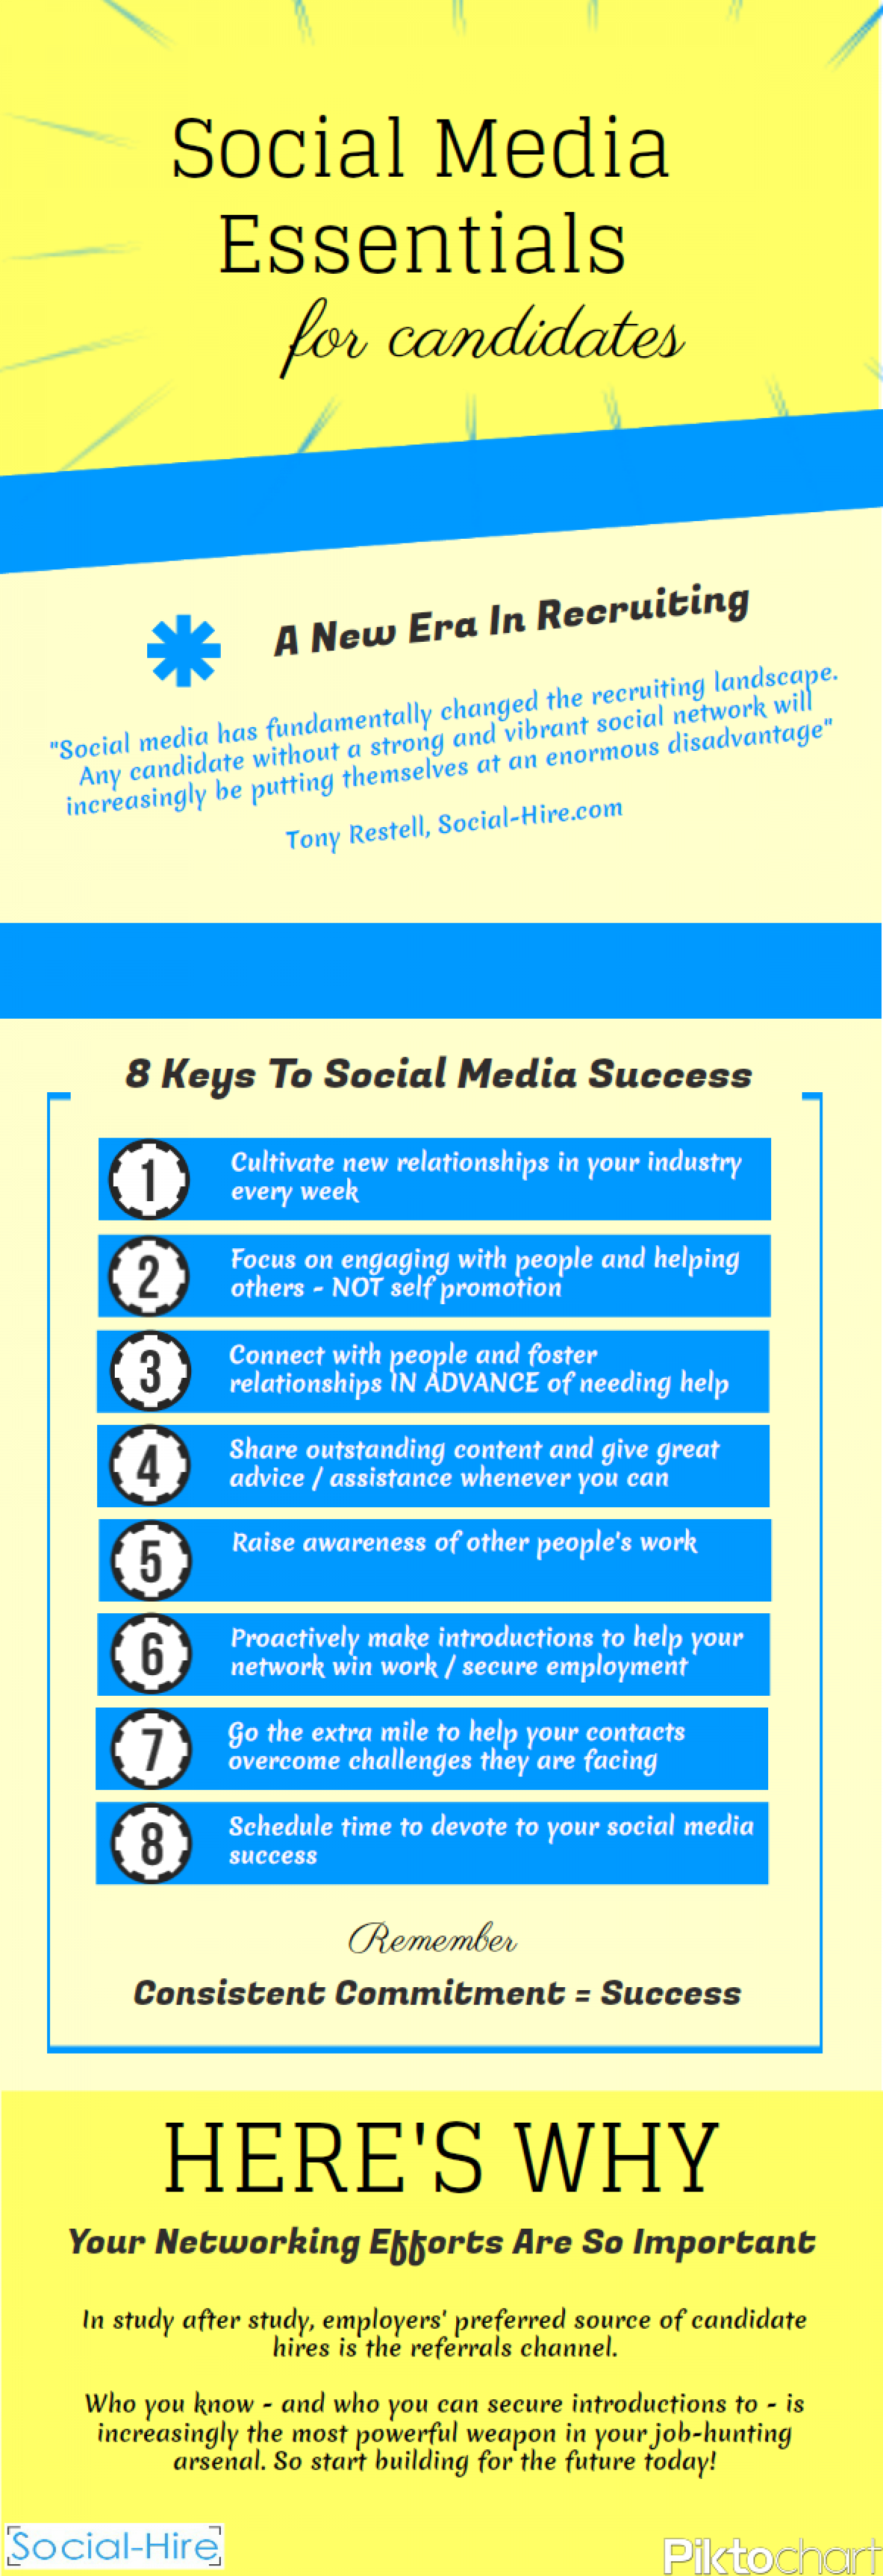 Social Media Essentials For Candidates Infographic